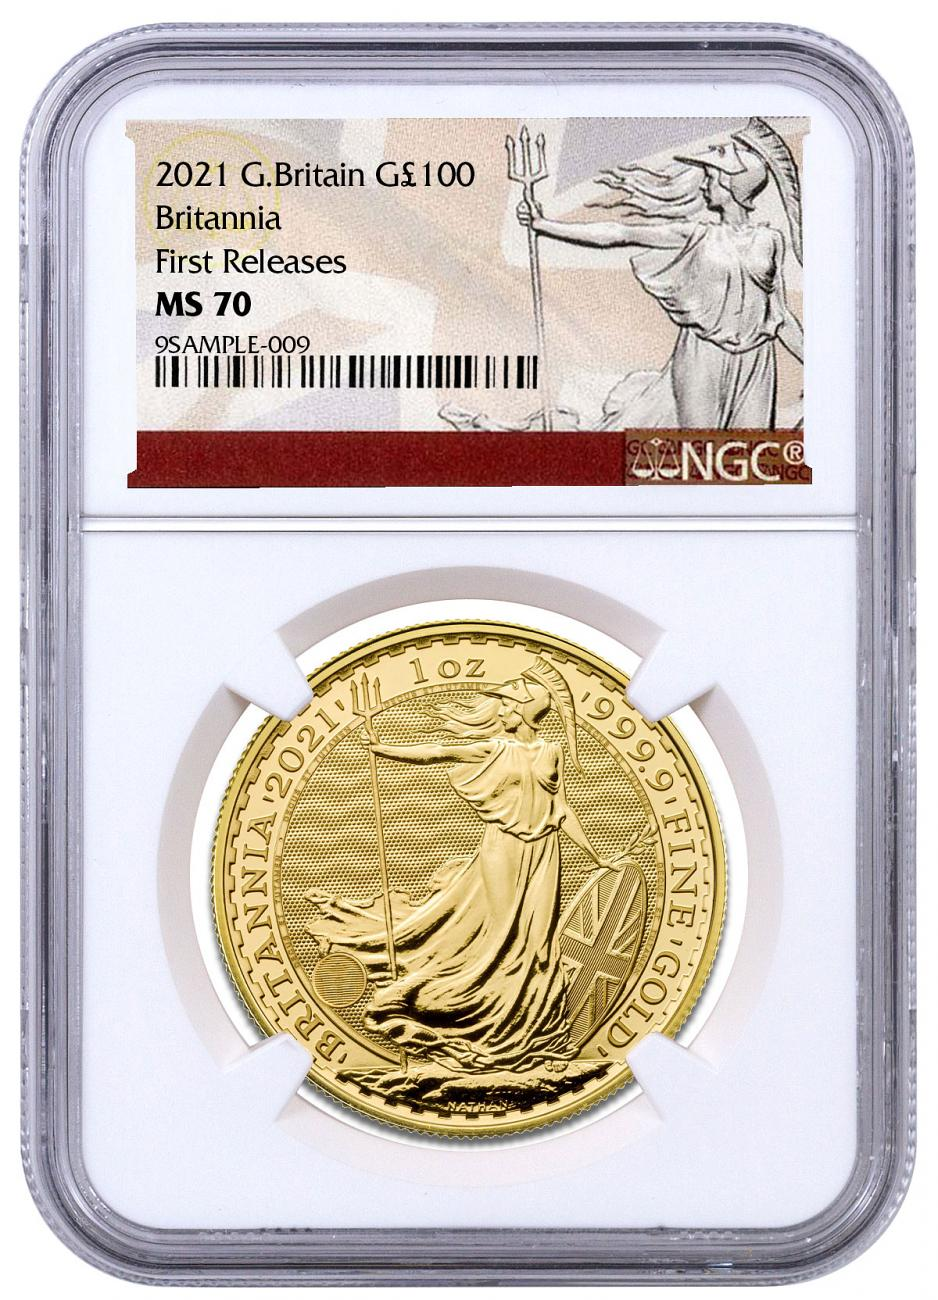 2021 Great Britain Gold Britannia 1 oz Gold £100 Coin NGC MS70 FR White Core Holder Britannia Label